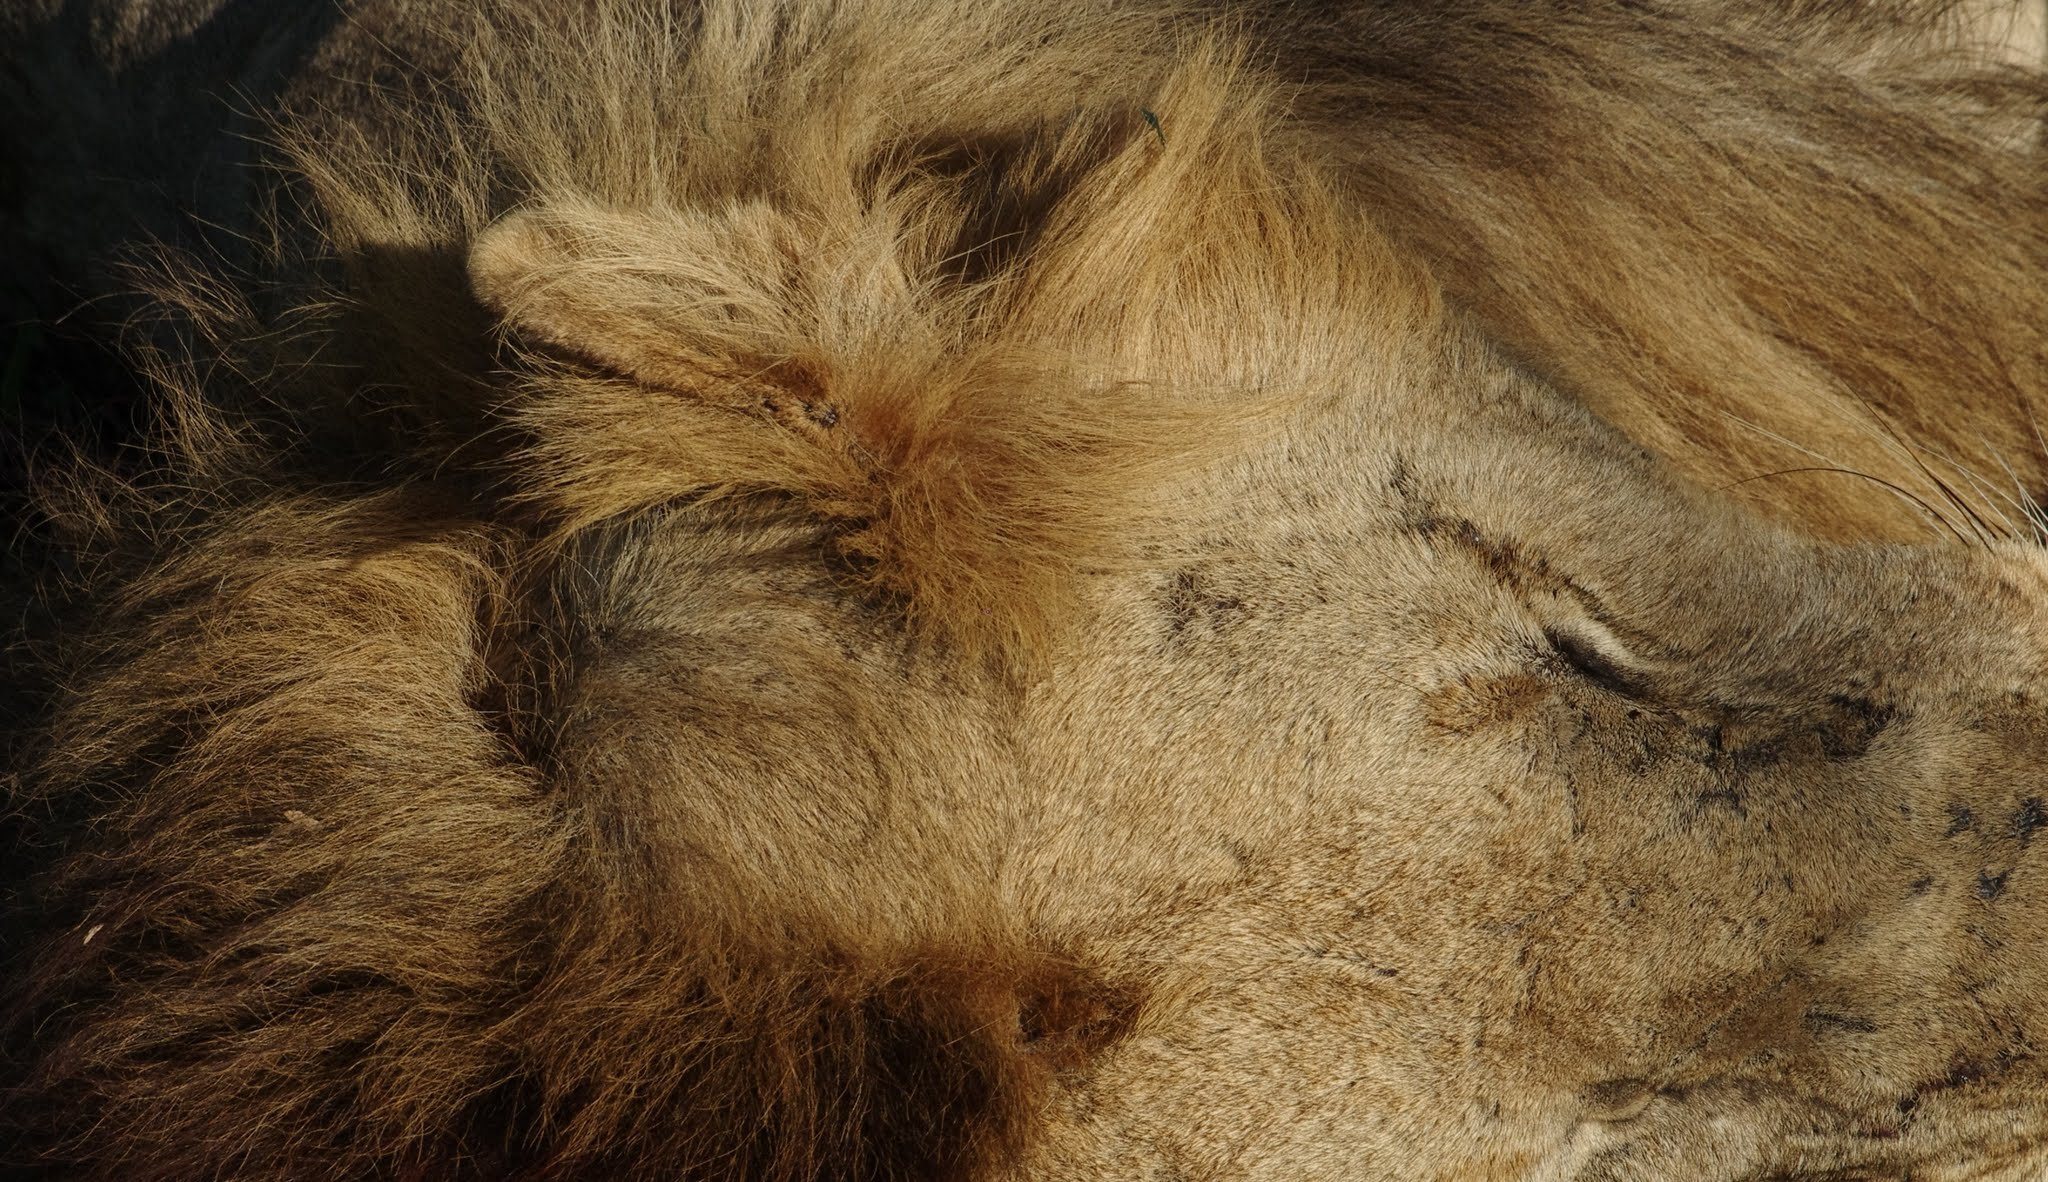 lion12-selous-12-11